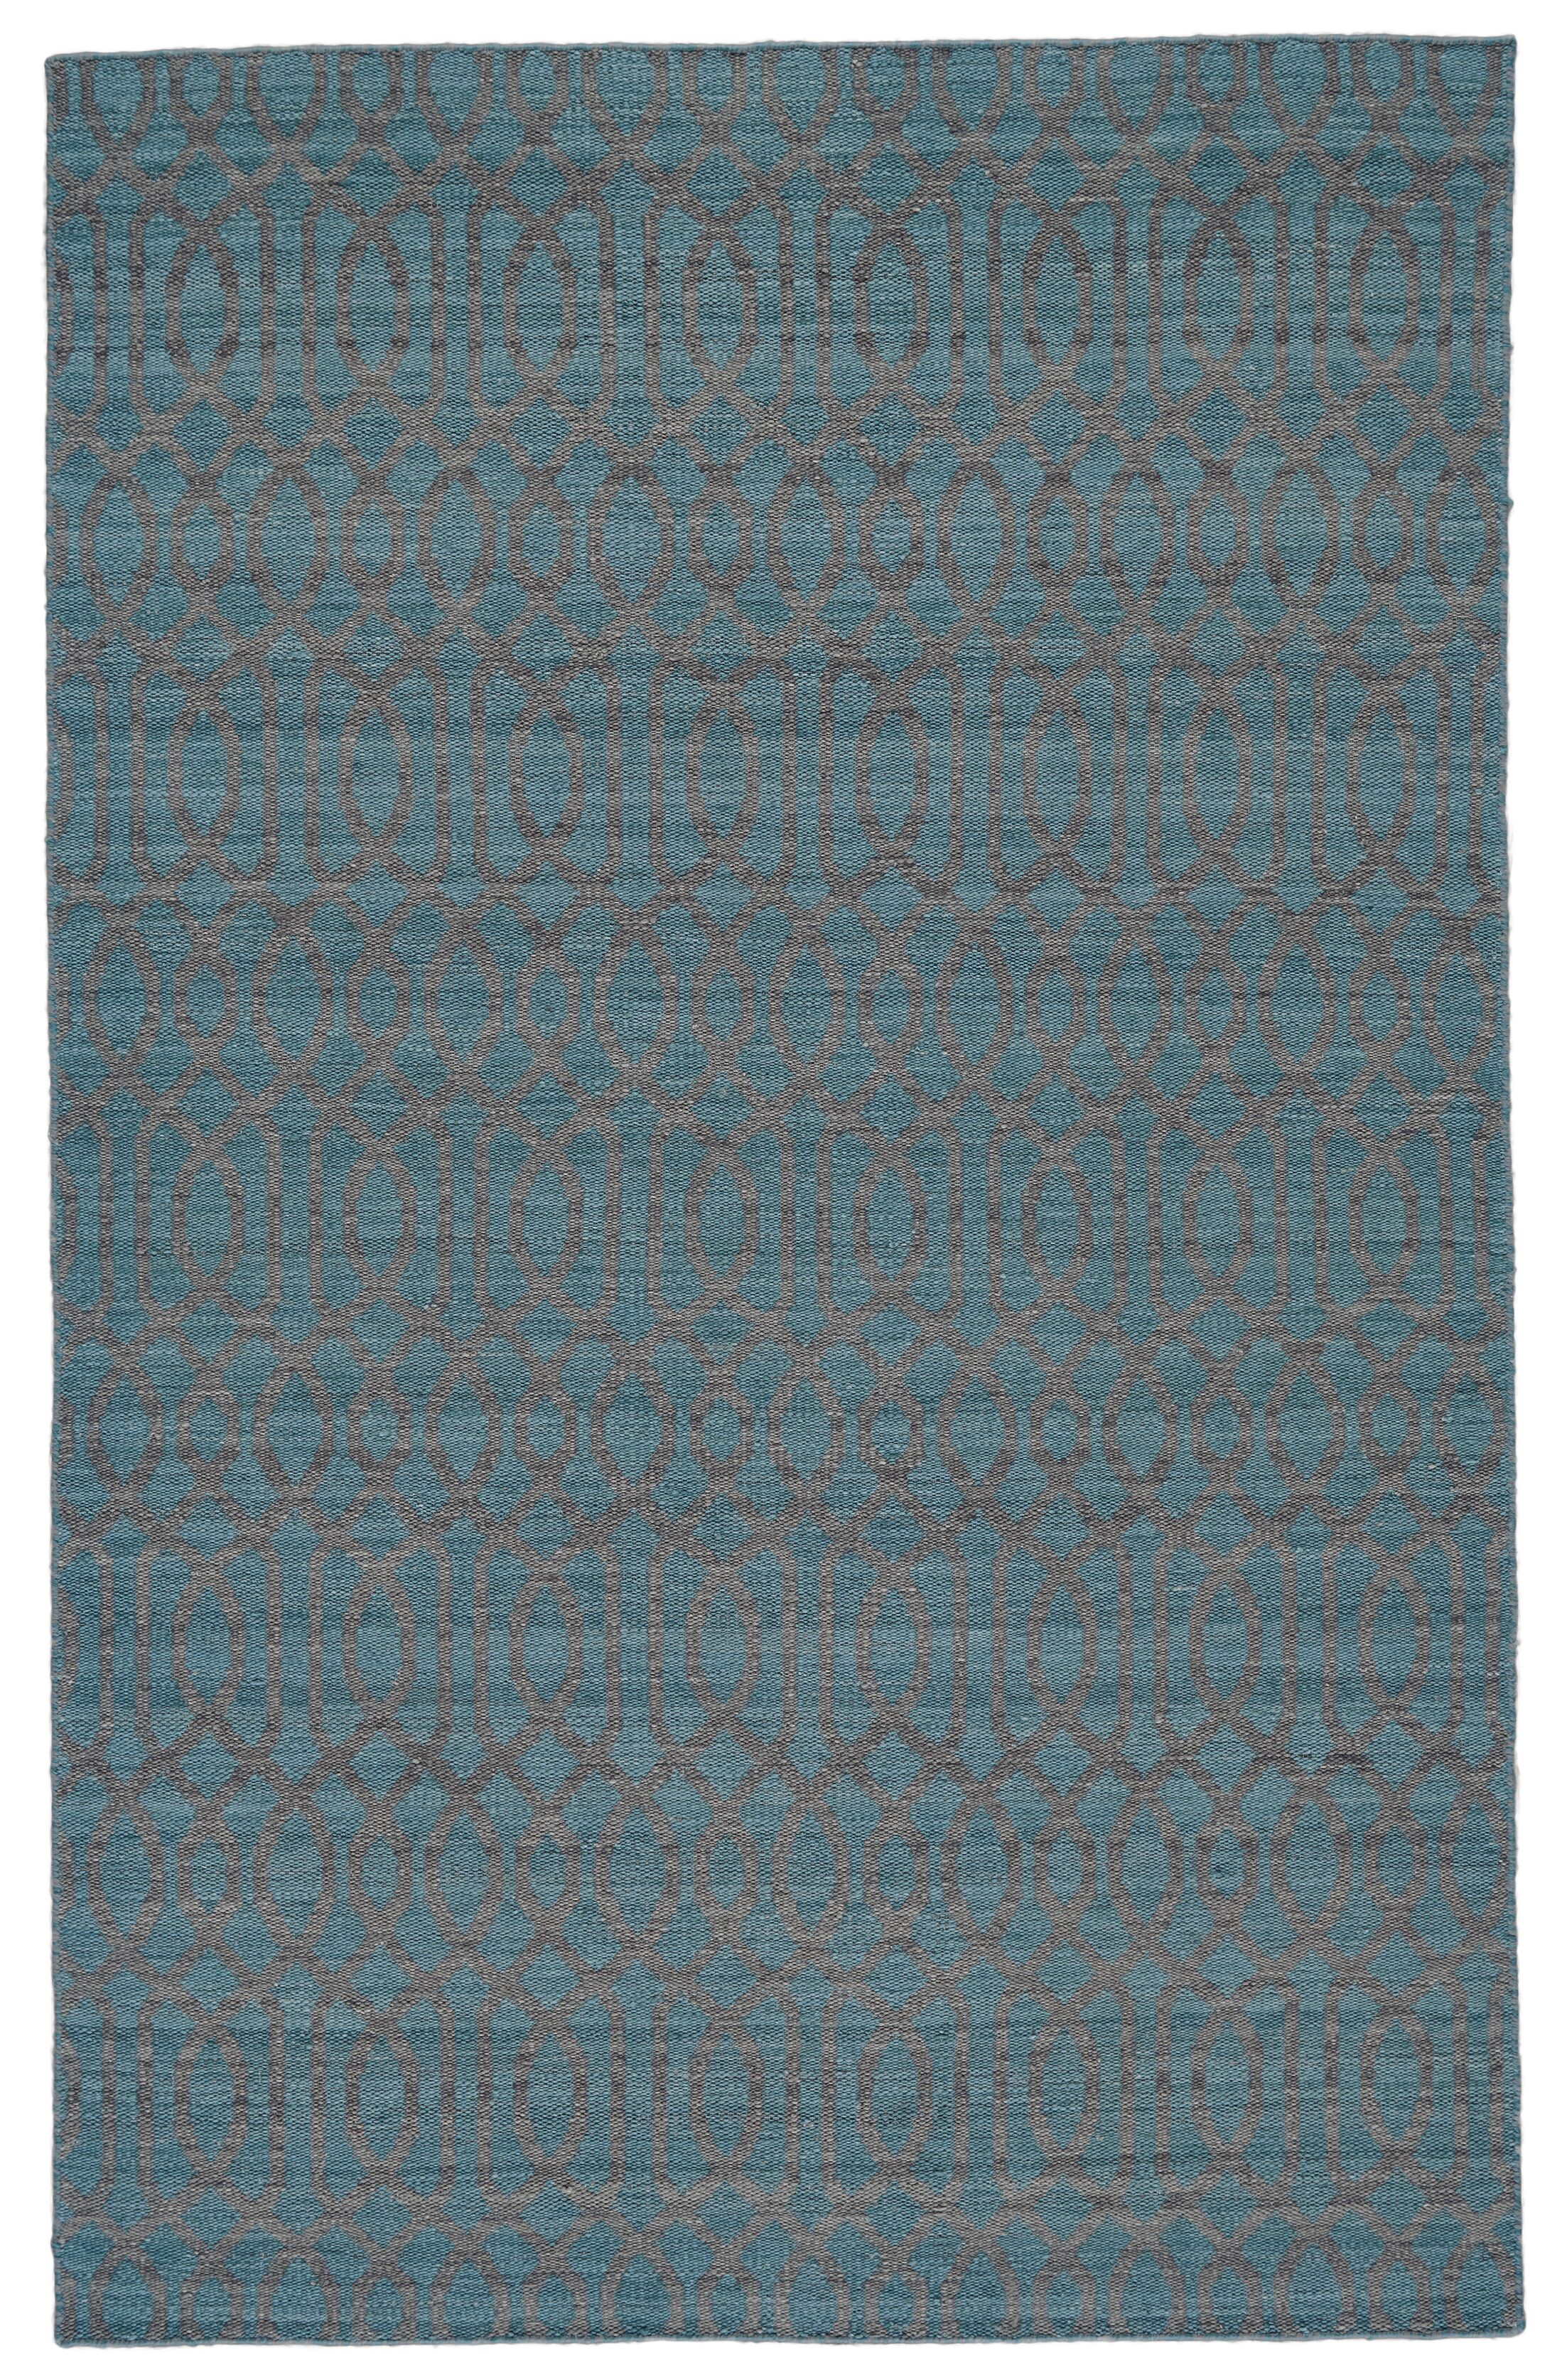 Hallock Hand-Loomed Teal Area Rug Rug Size: Rectangle 8' x 10'